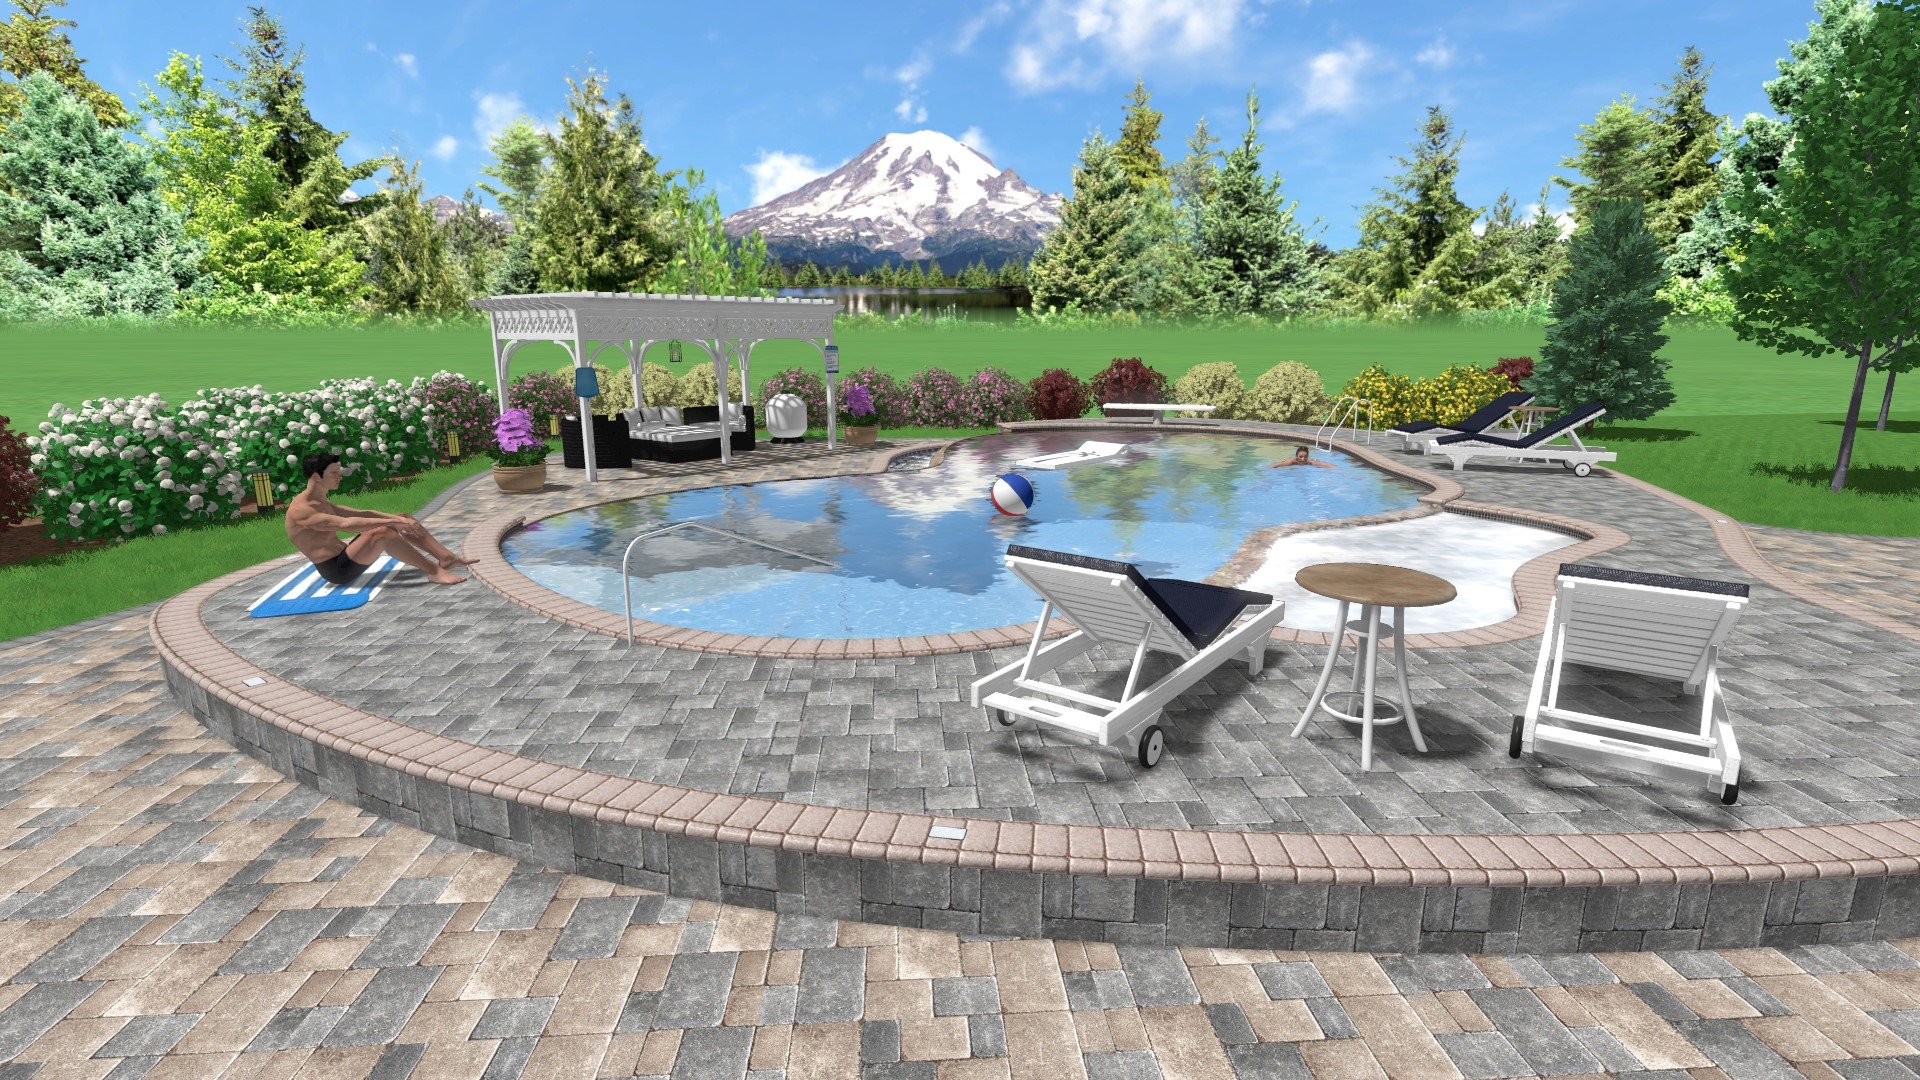 3D Landscape Design With Pool